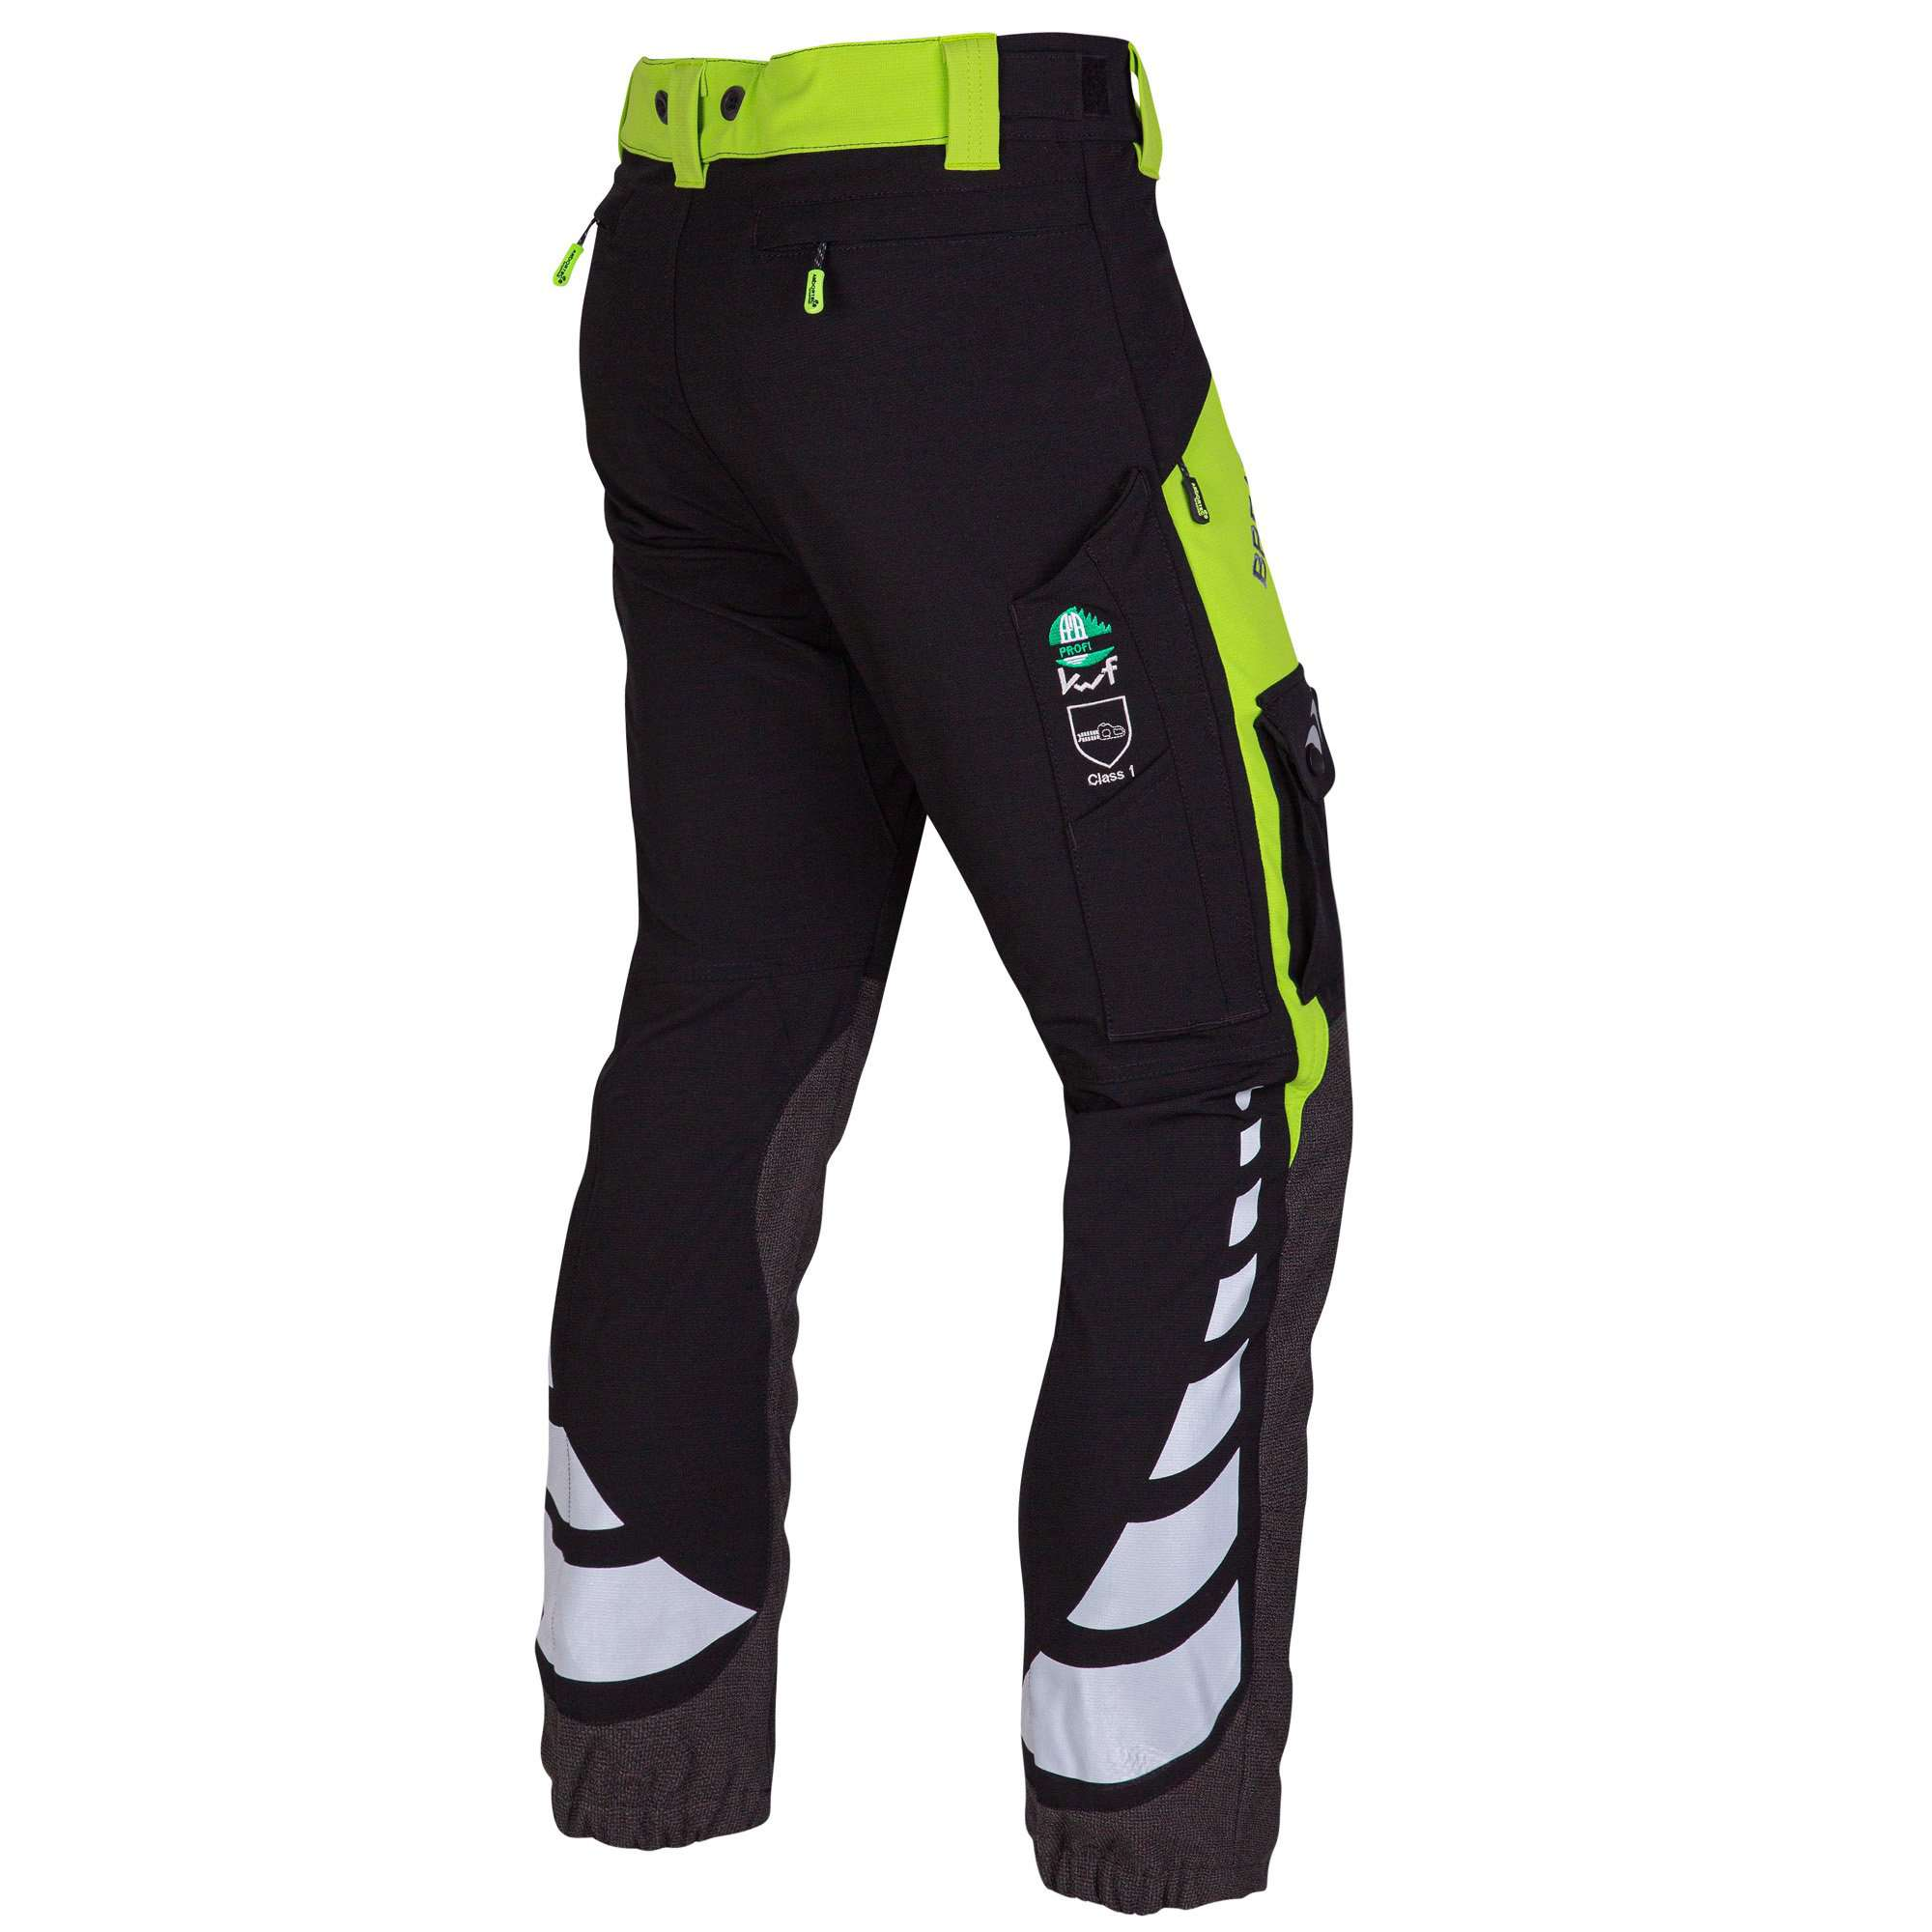 AT4050 Breatheflex Ladies Type C Class 1 Chainsaw Trousers - Lime - Arbortec Forestwear